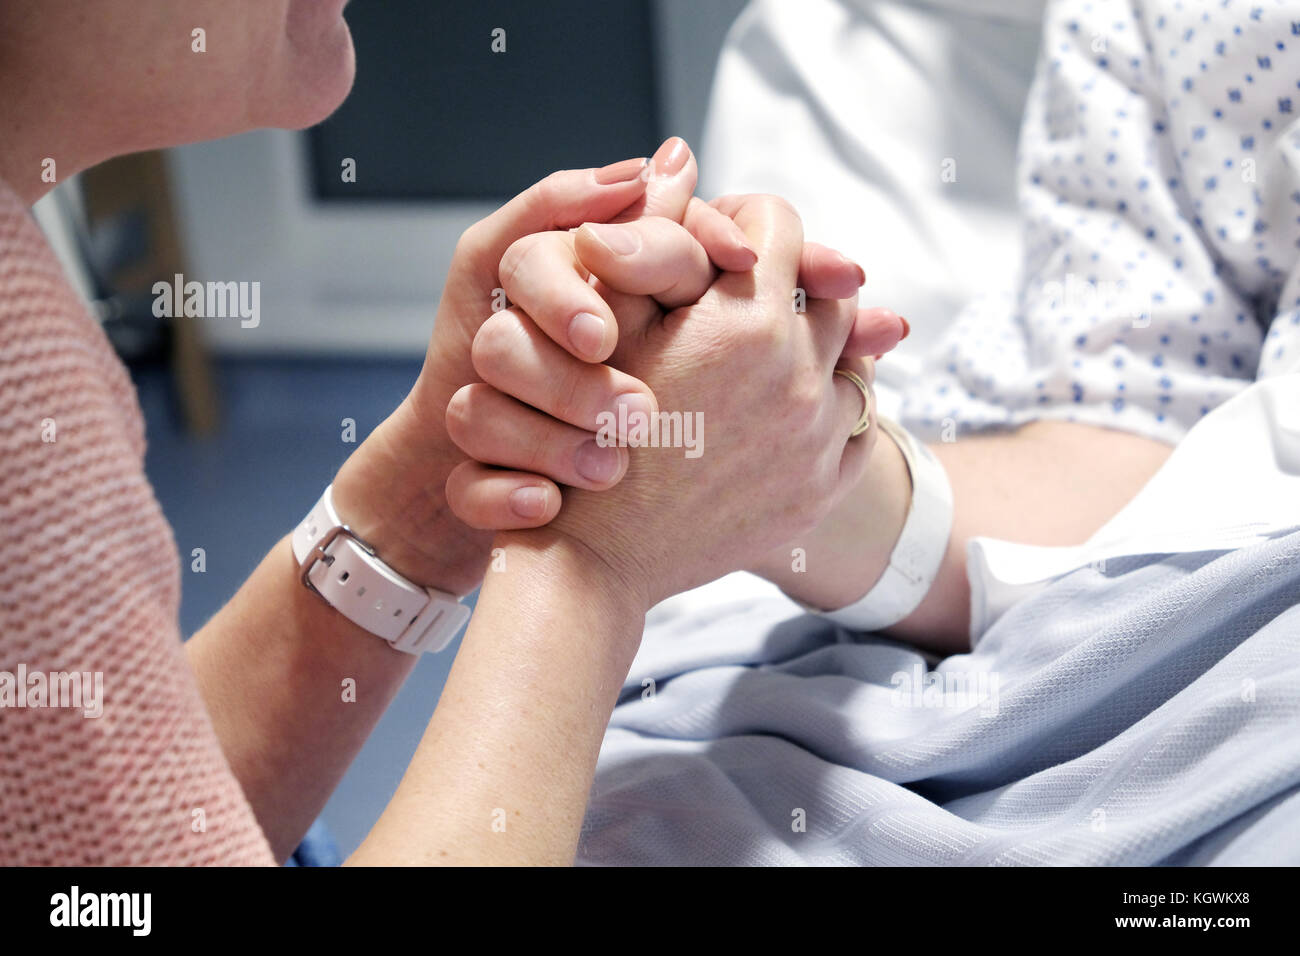 A mother clasps the hand of her son who is lying ill in a hospital bed. Offering support as he starts his recovery, - Stock Image